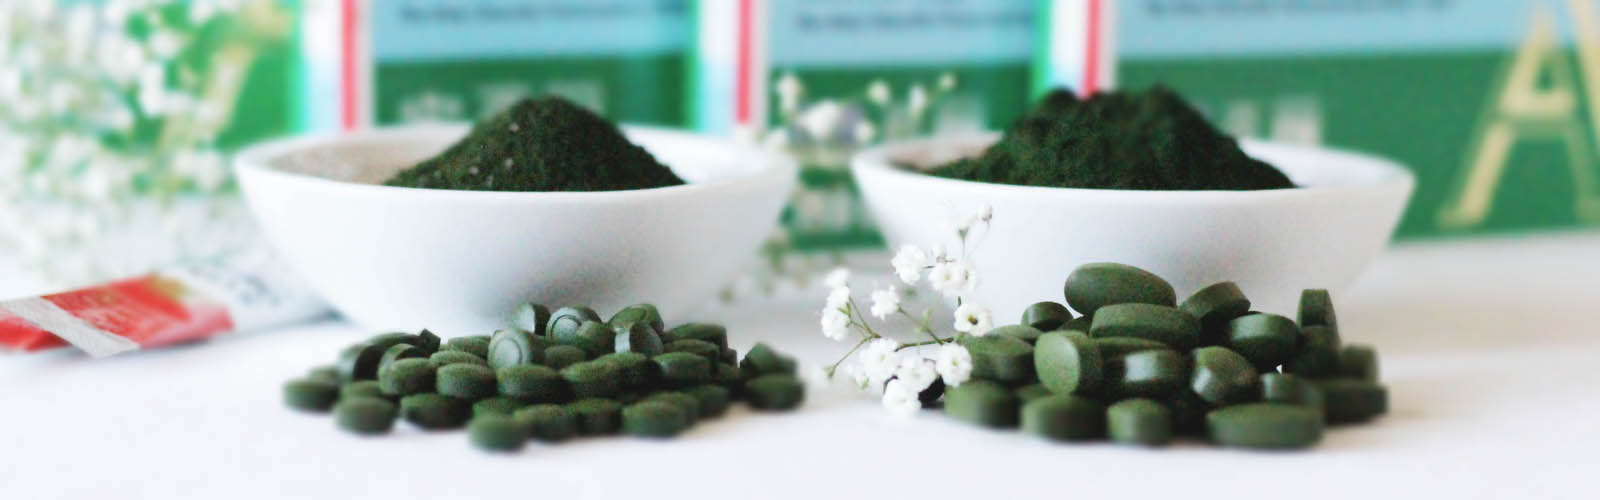 Sun Chlorella provides the most digestible chlorella in the world